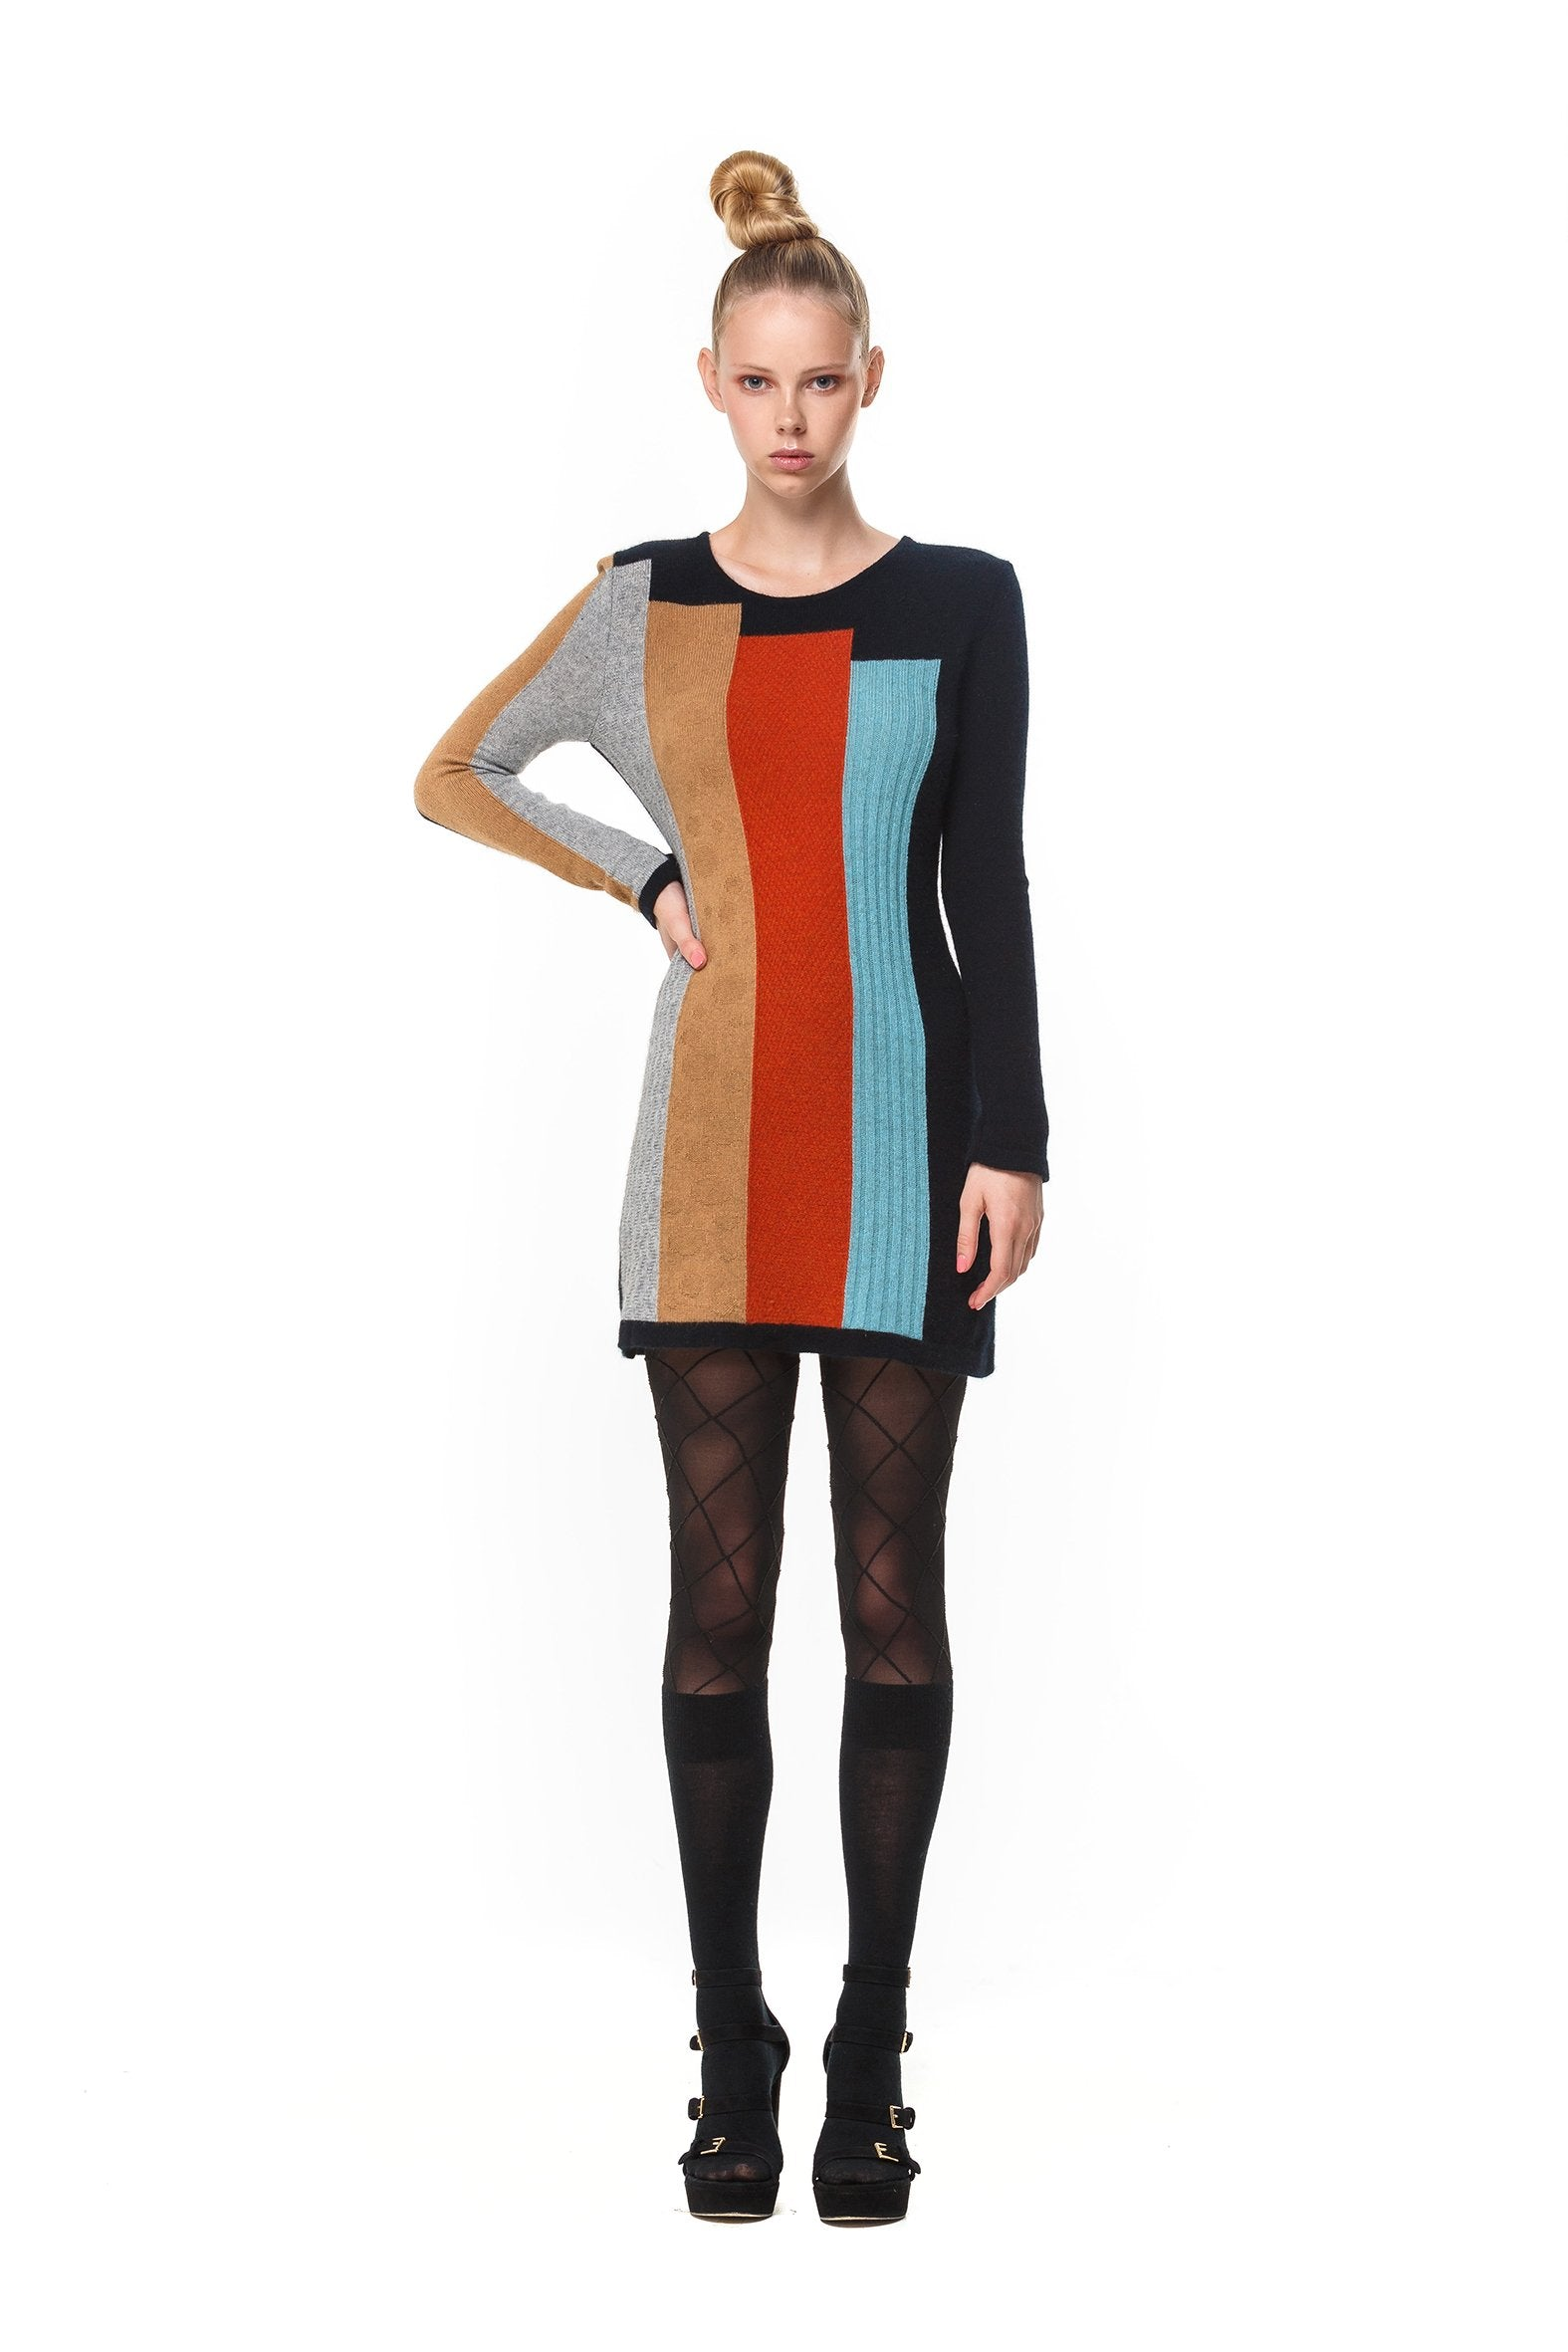 COLOUR BLOCK MINI - Woolshed Gallery